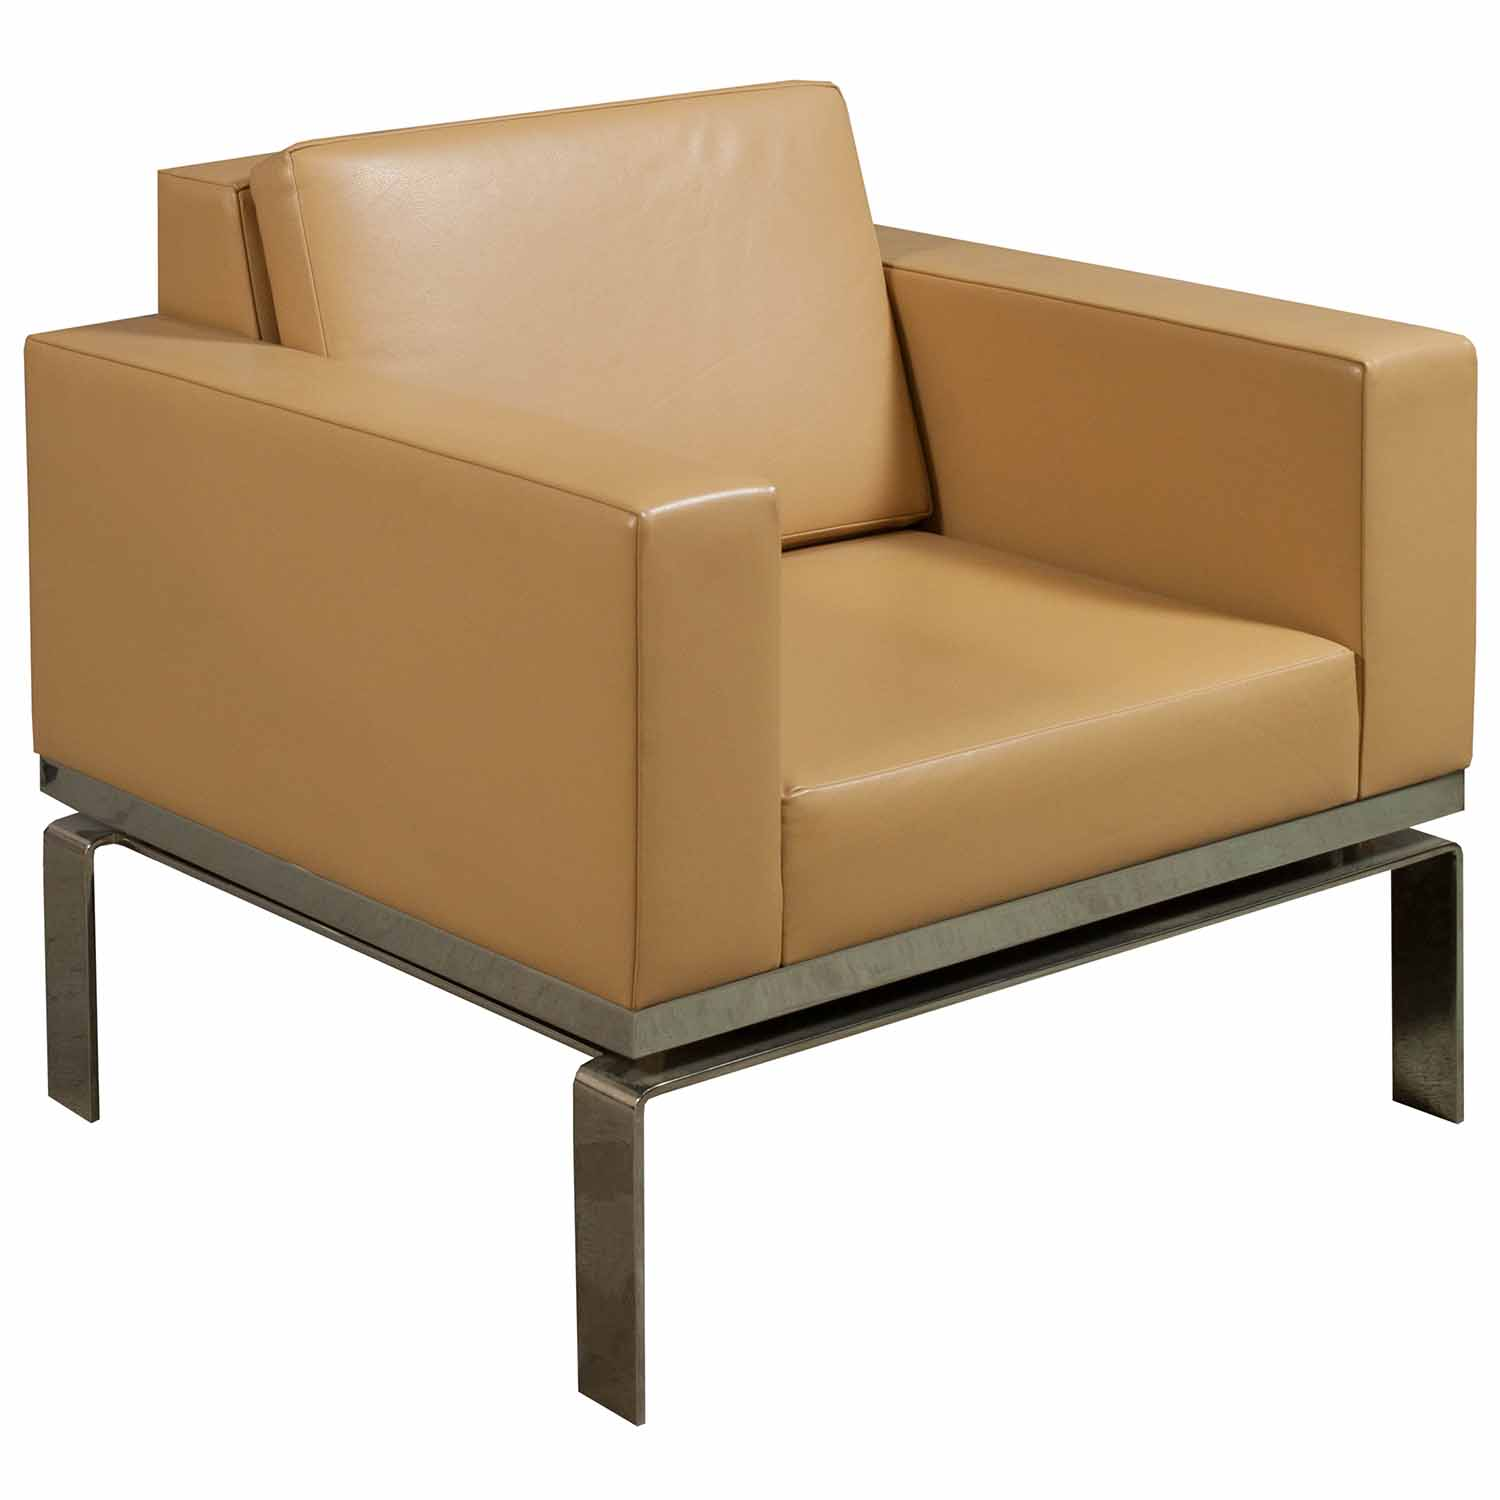 Bernhardt One Series Used Leather Reception Chair ...